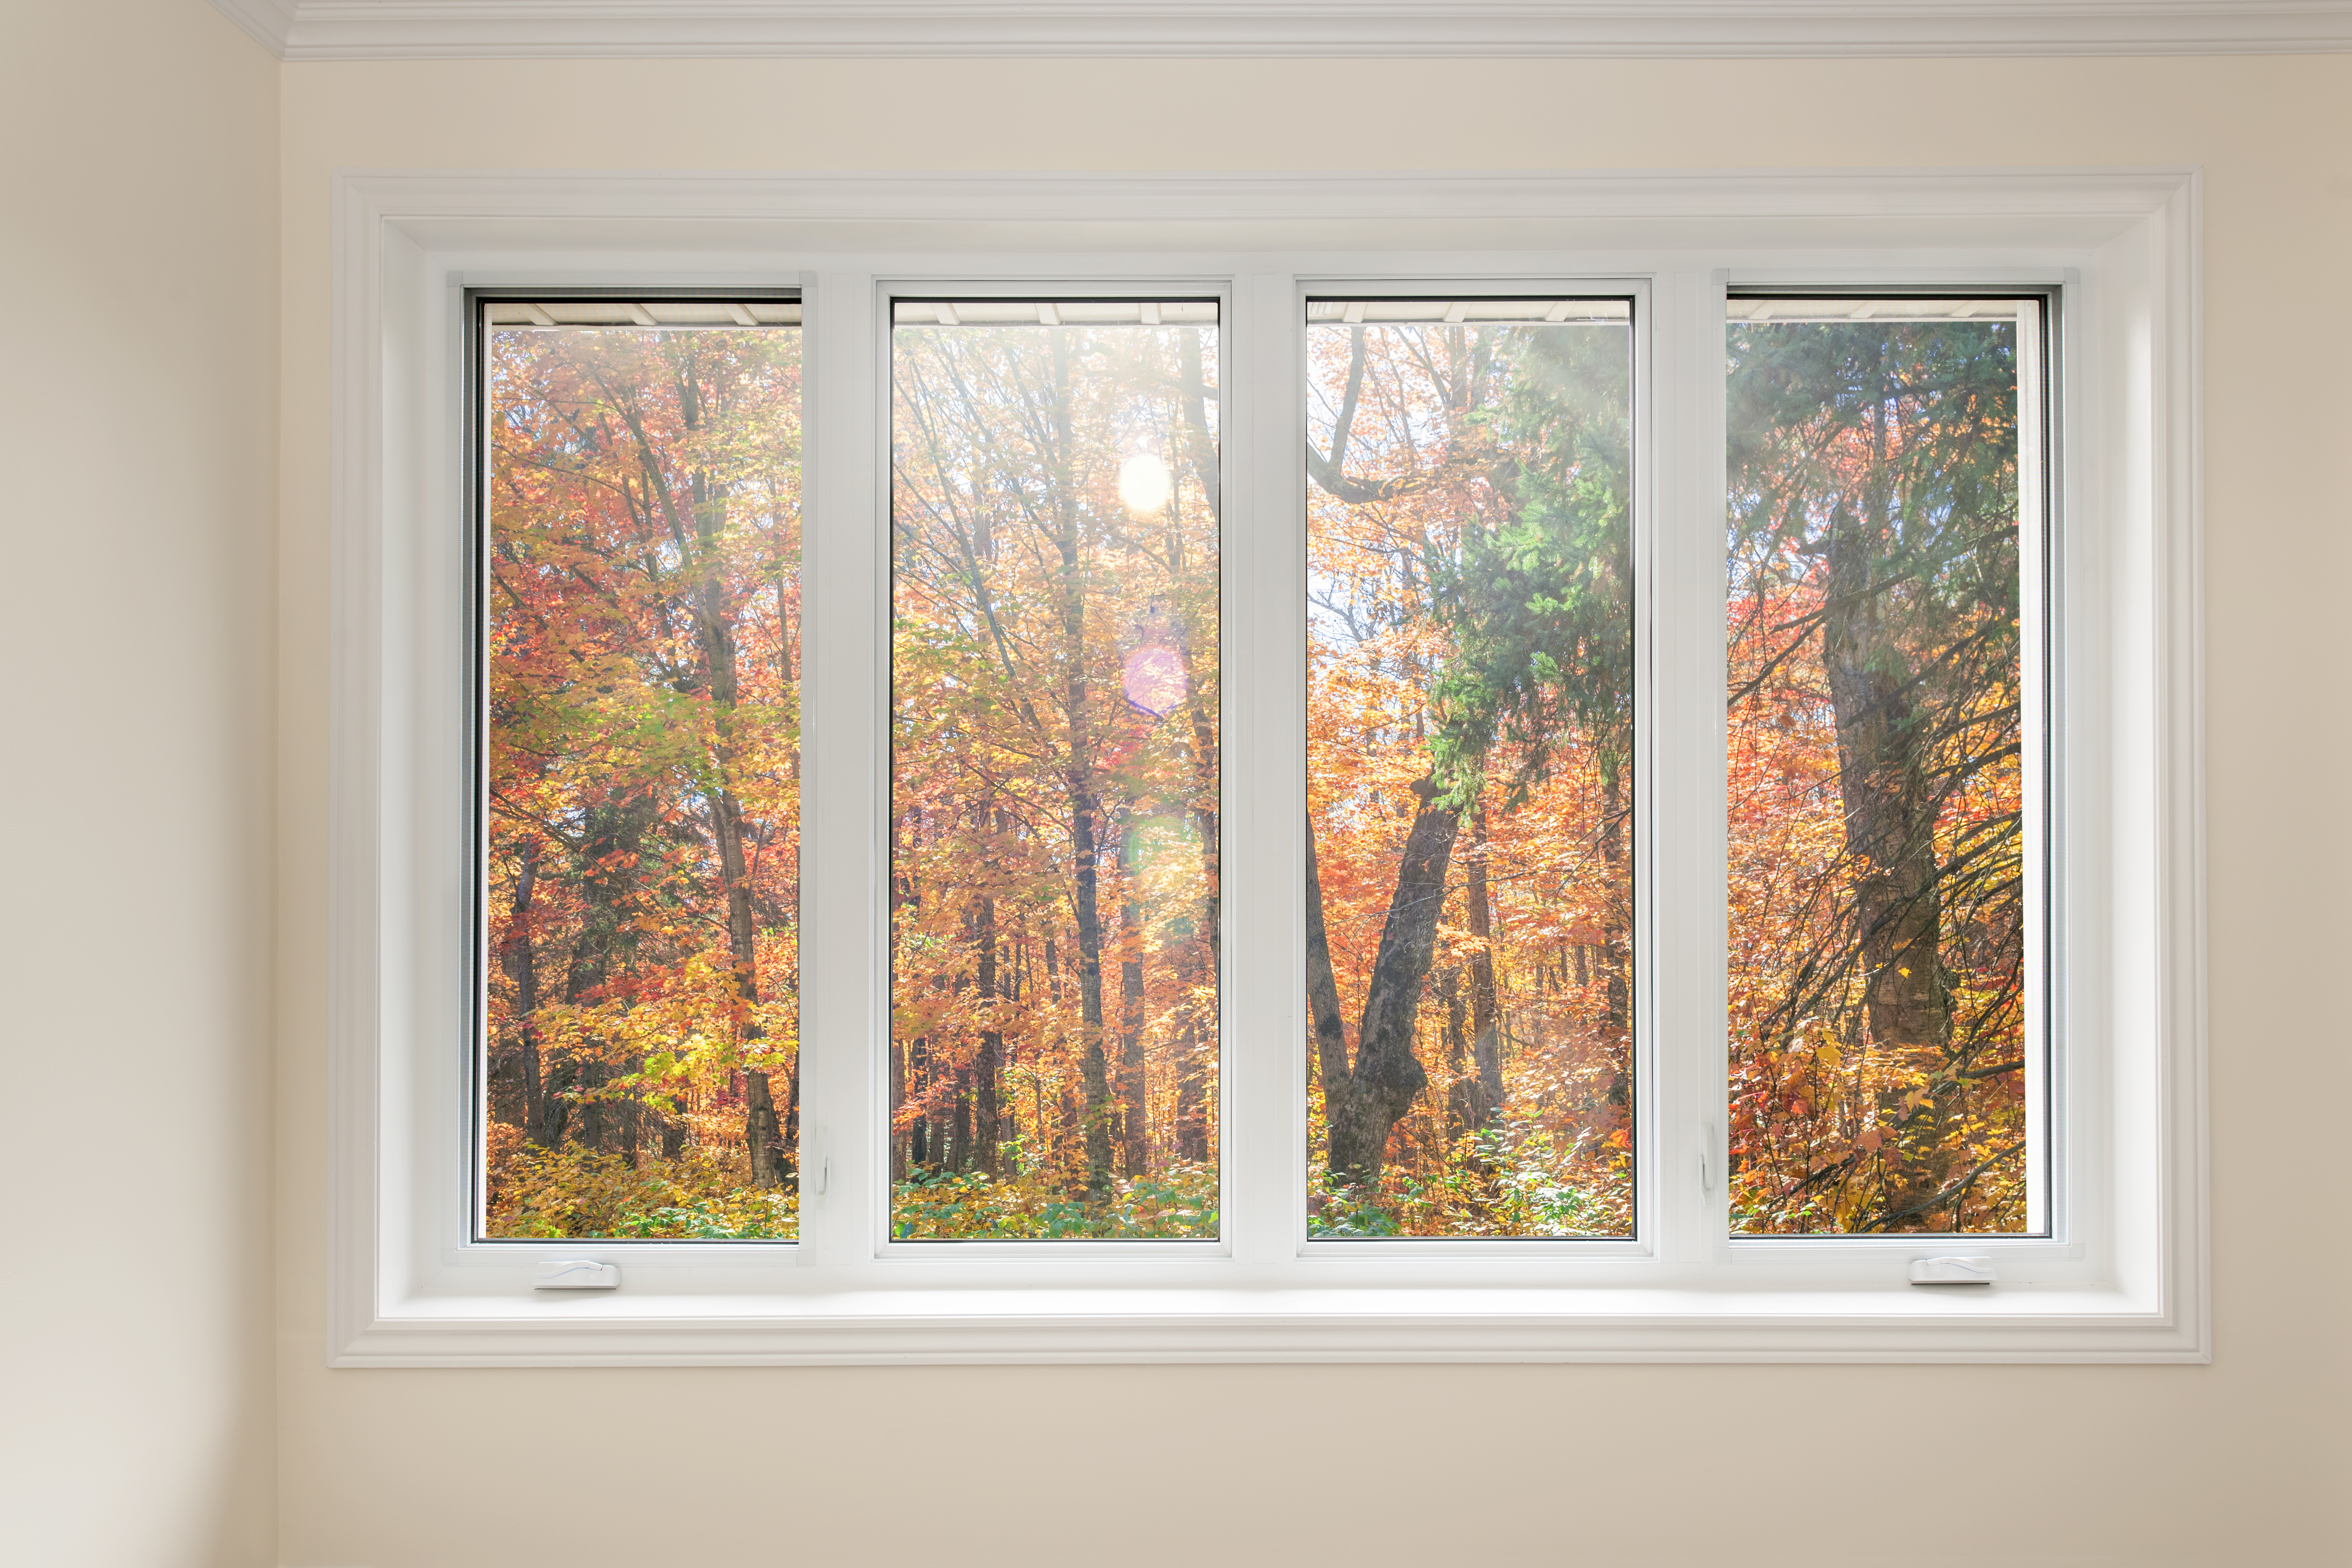 Window with view of autumn forest